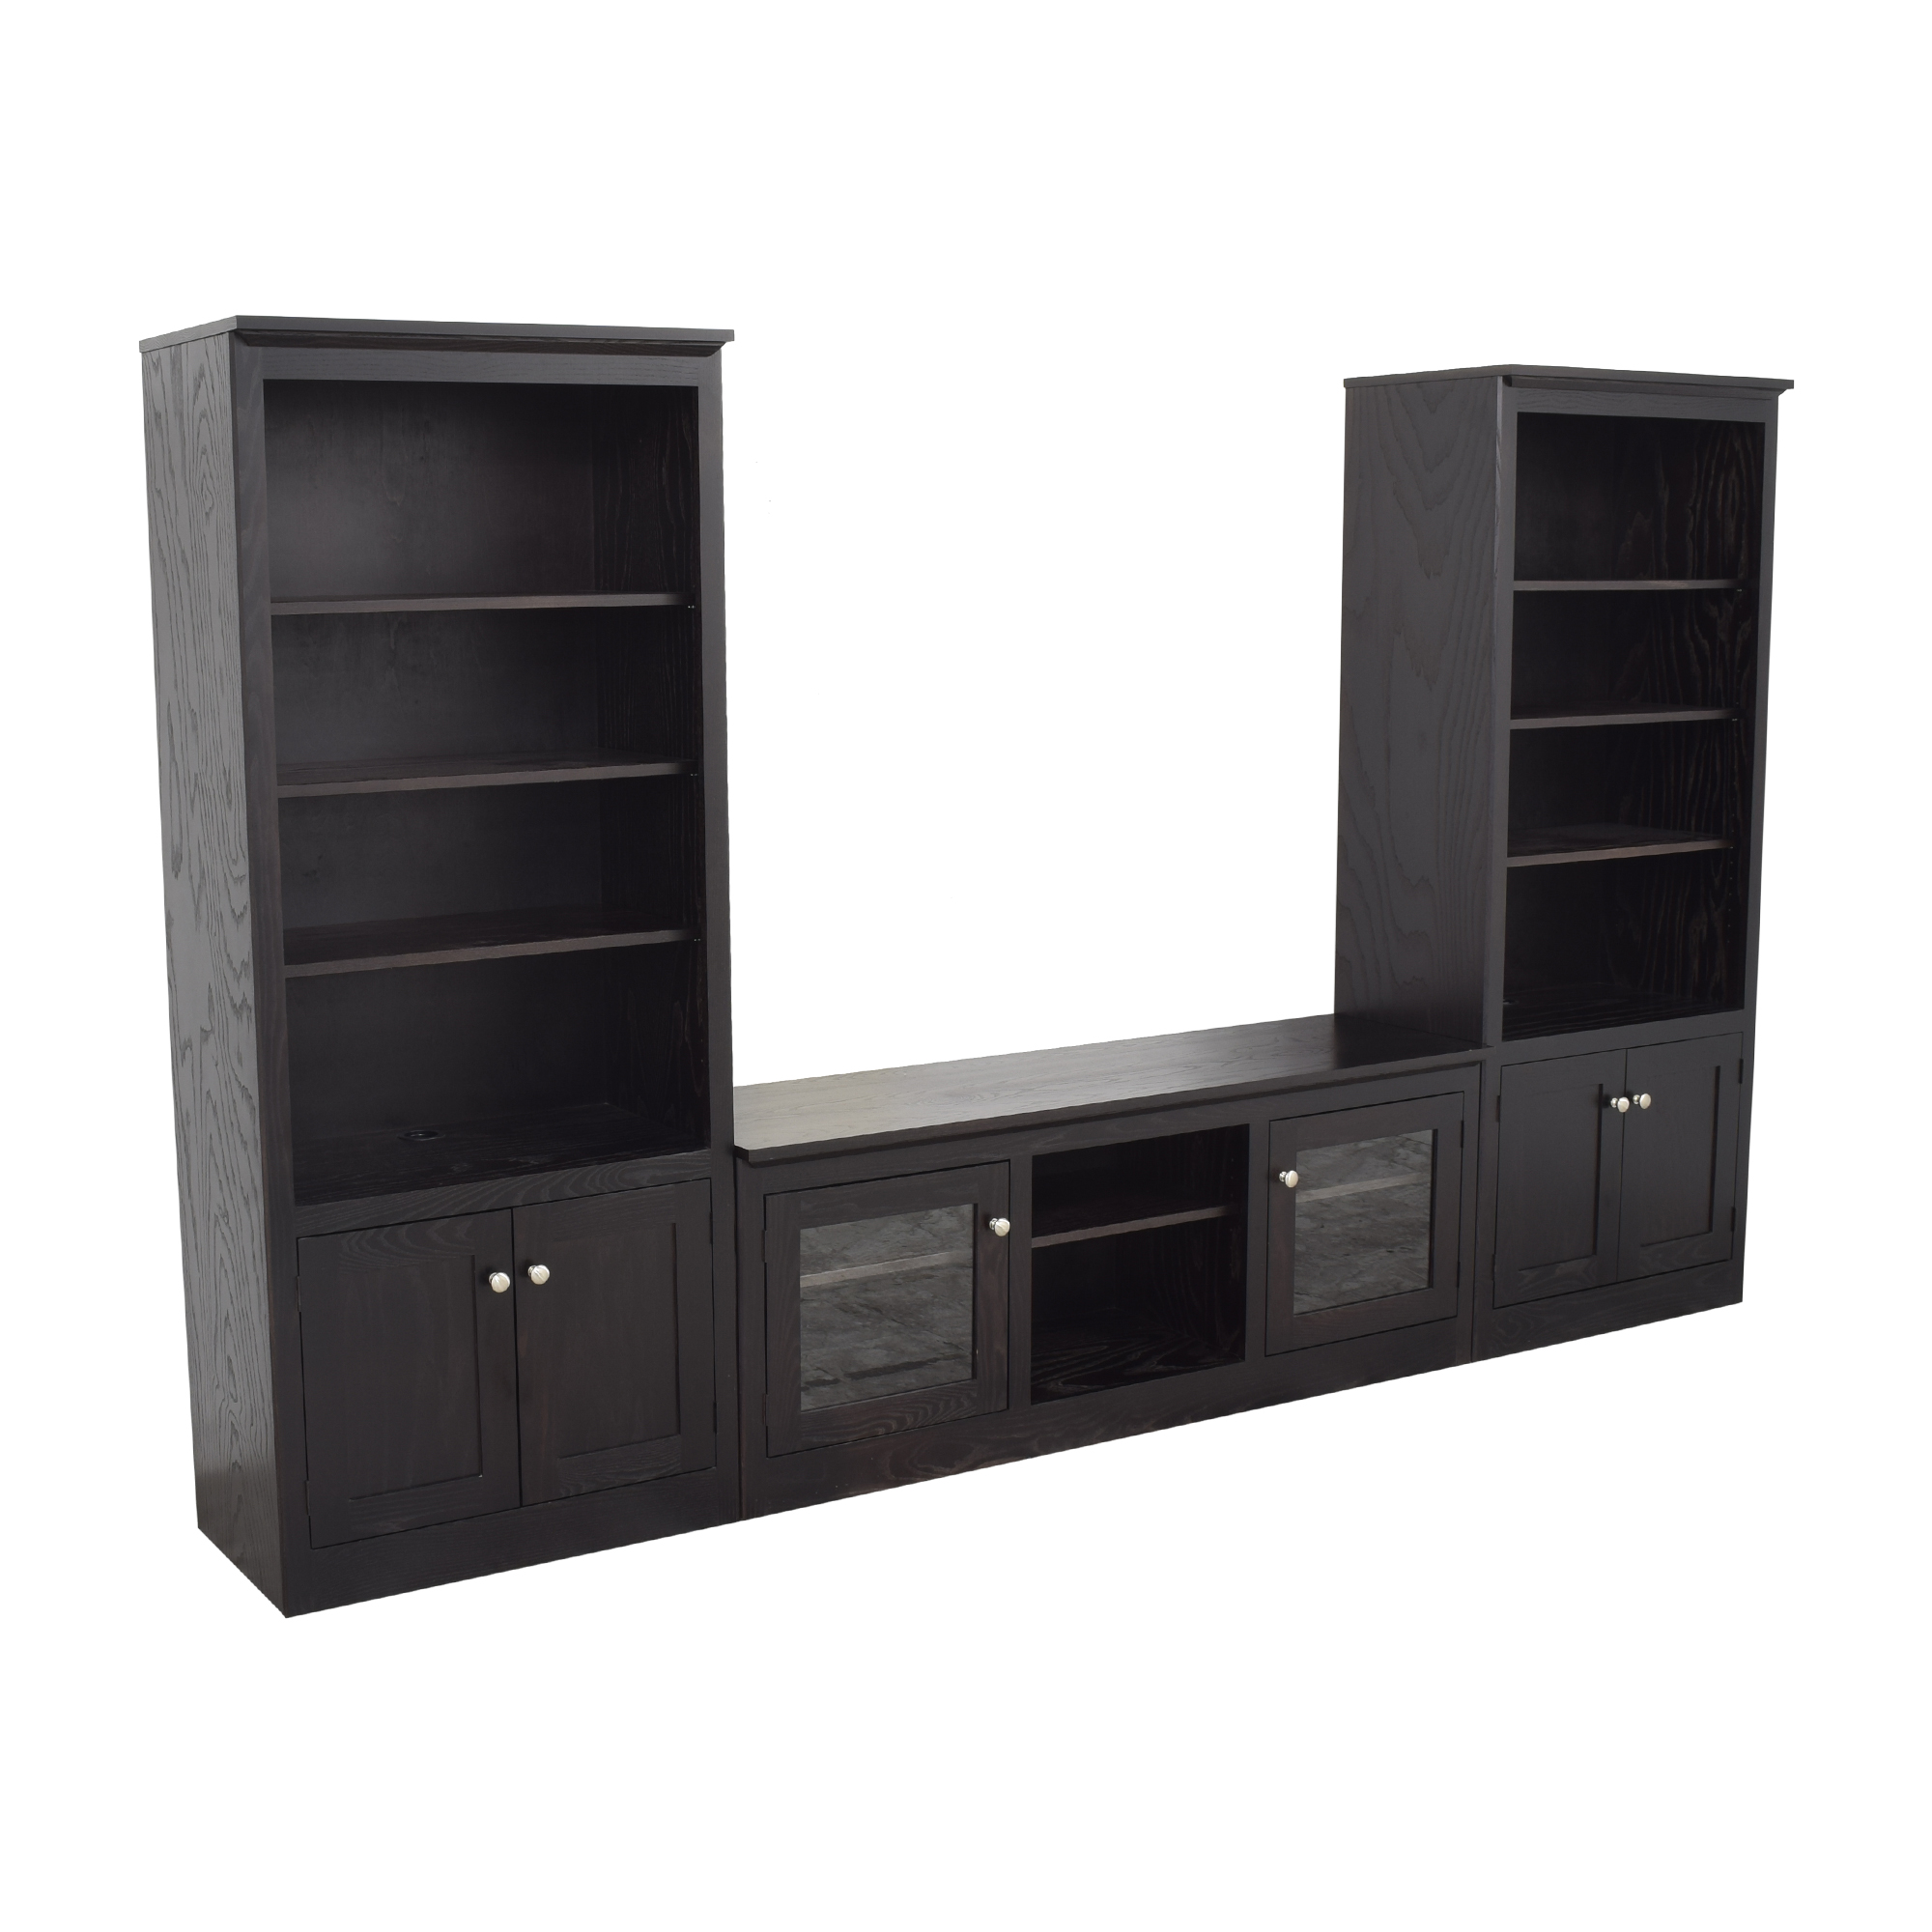 Crate & Barrel Crate & Barrel Media Center and Towers Storage